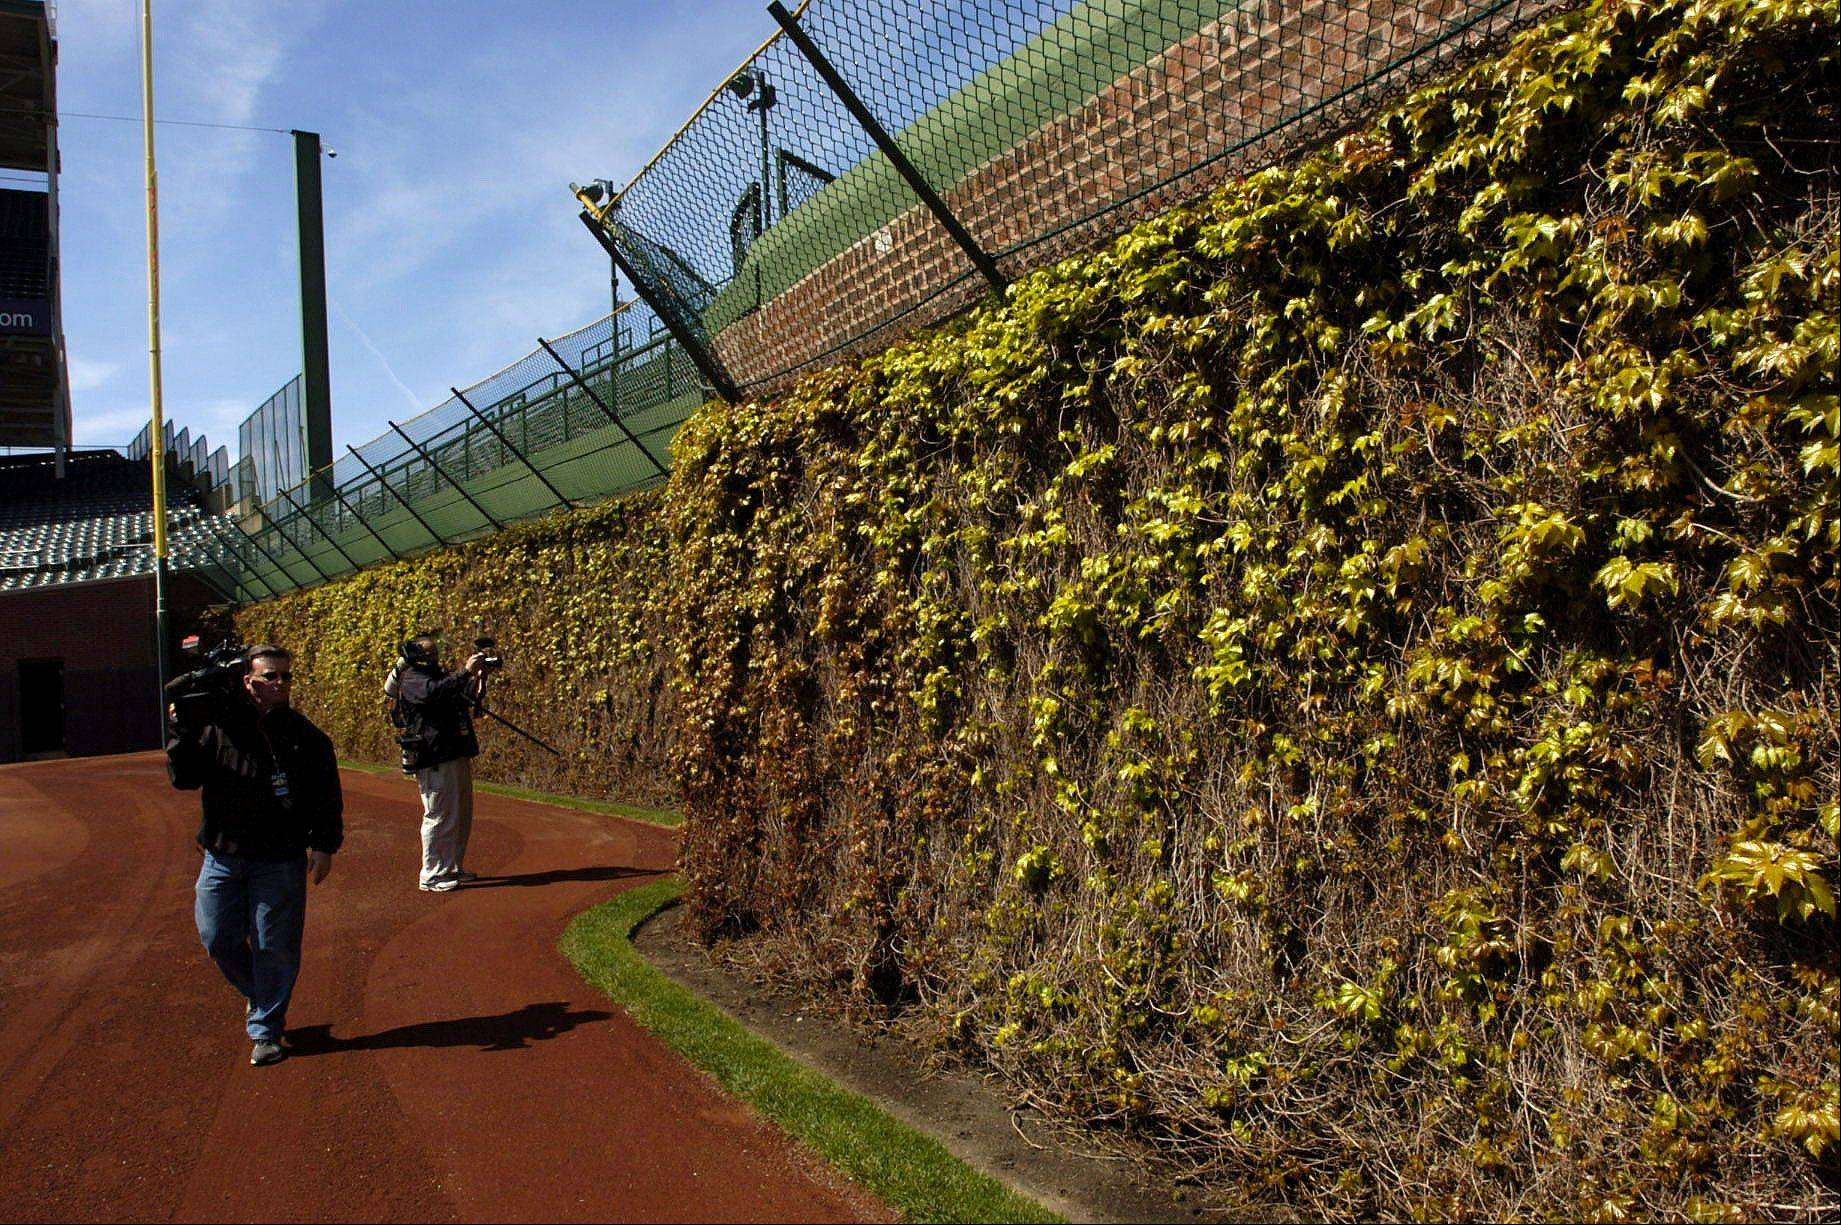 The Ivy is greening due to warm spring temps.